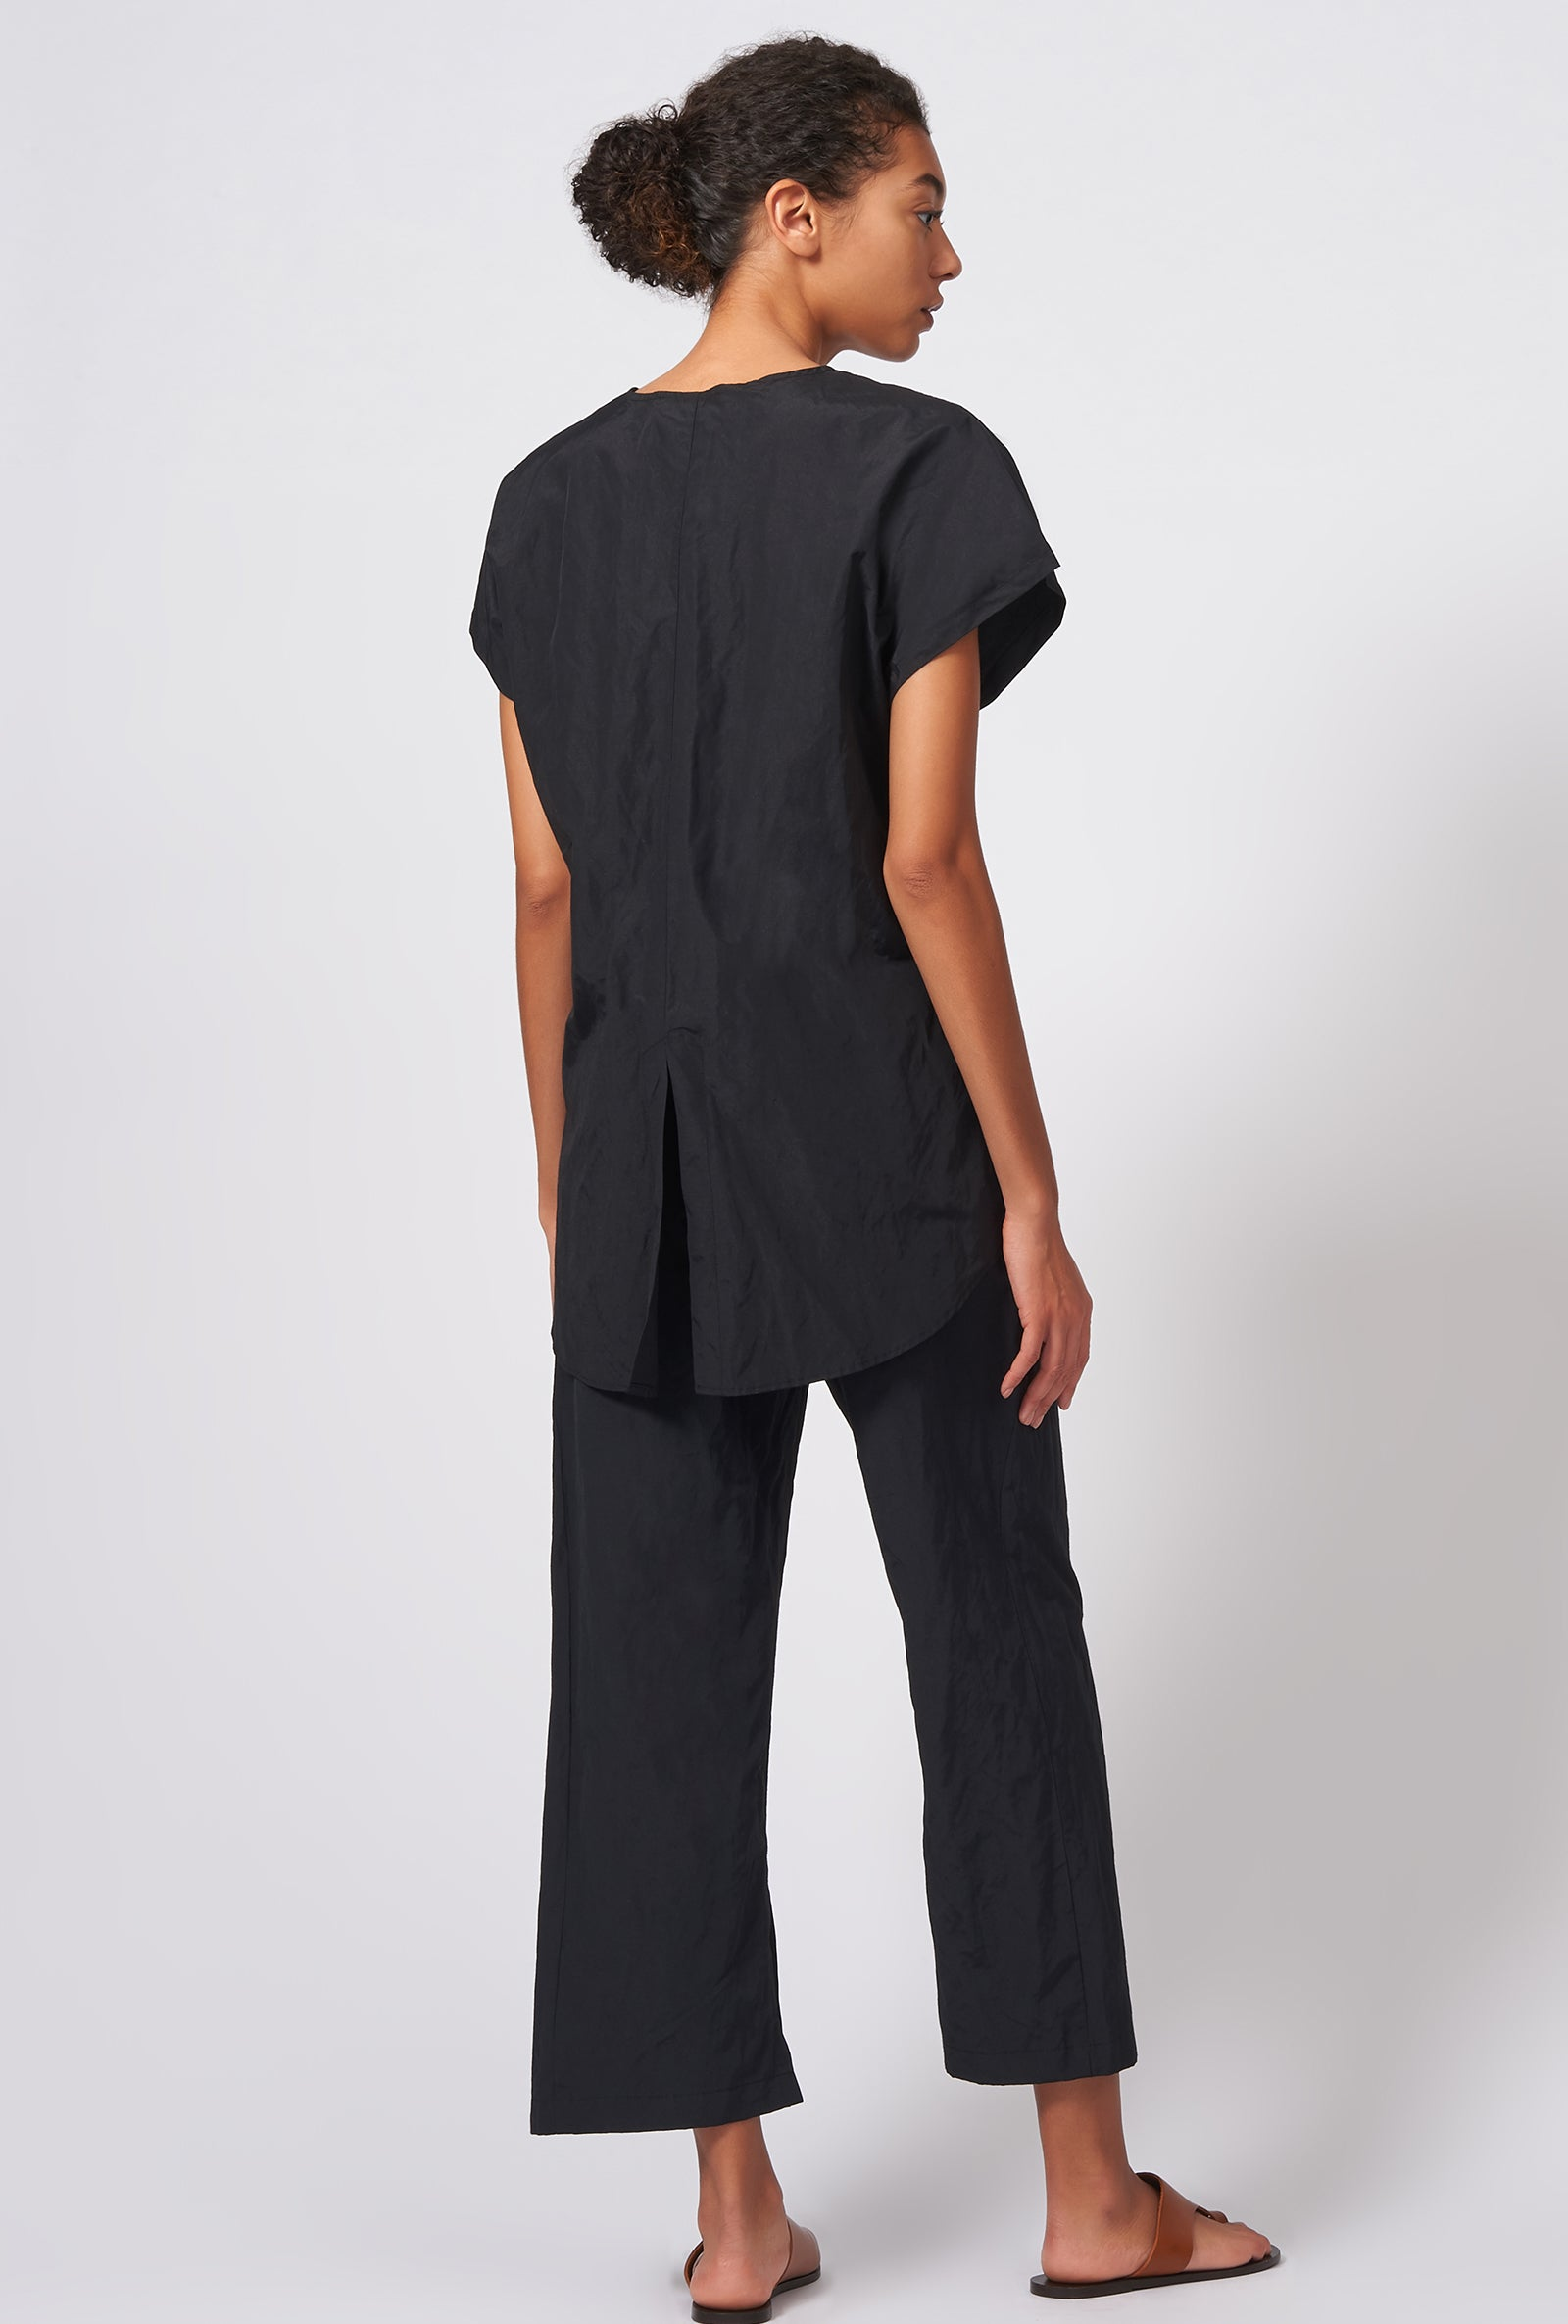 Kal Rieman Tux Back Tee in Black on Model Full Front View